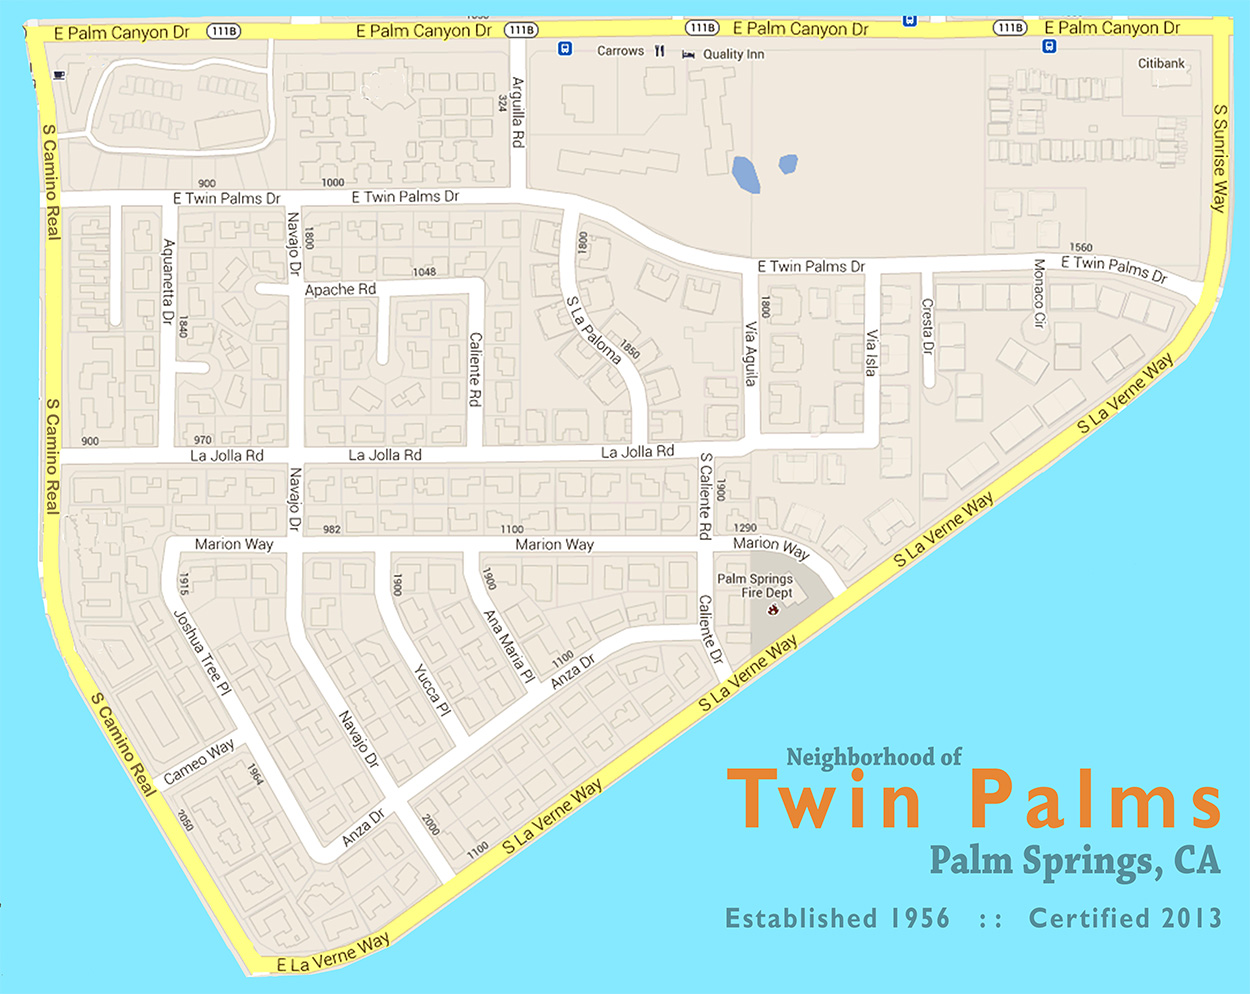 map of Twin Palms Palm Springs